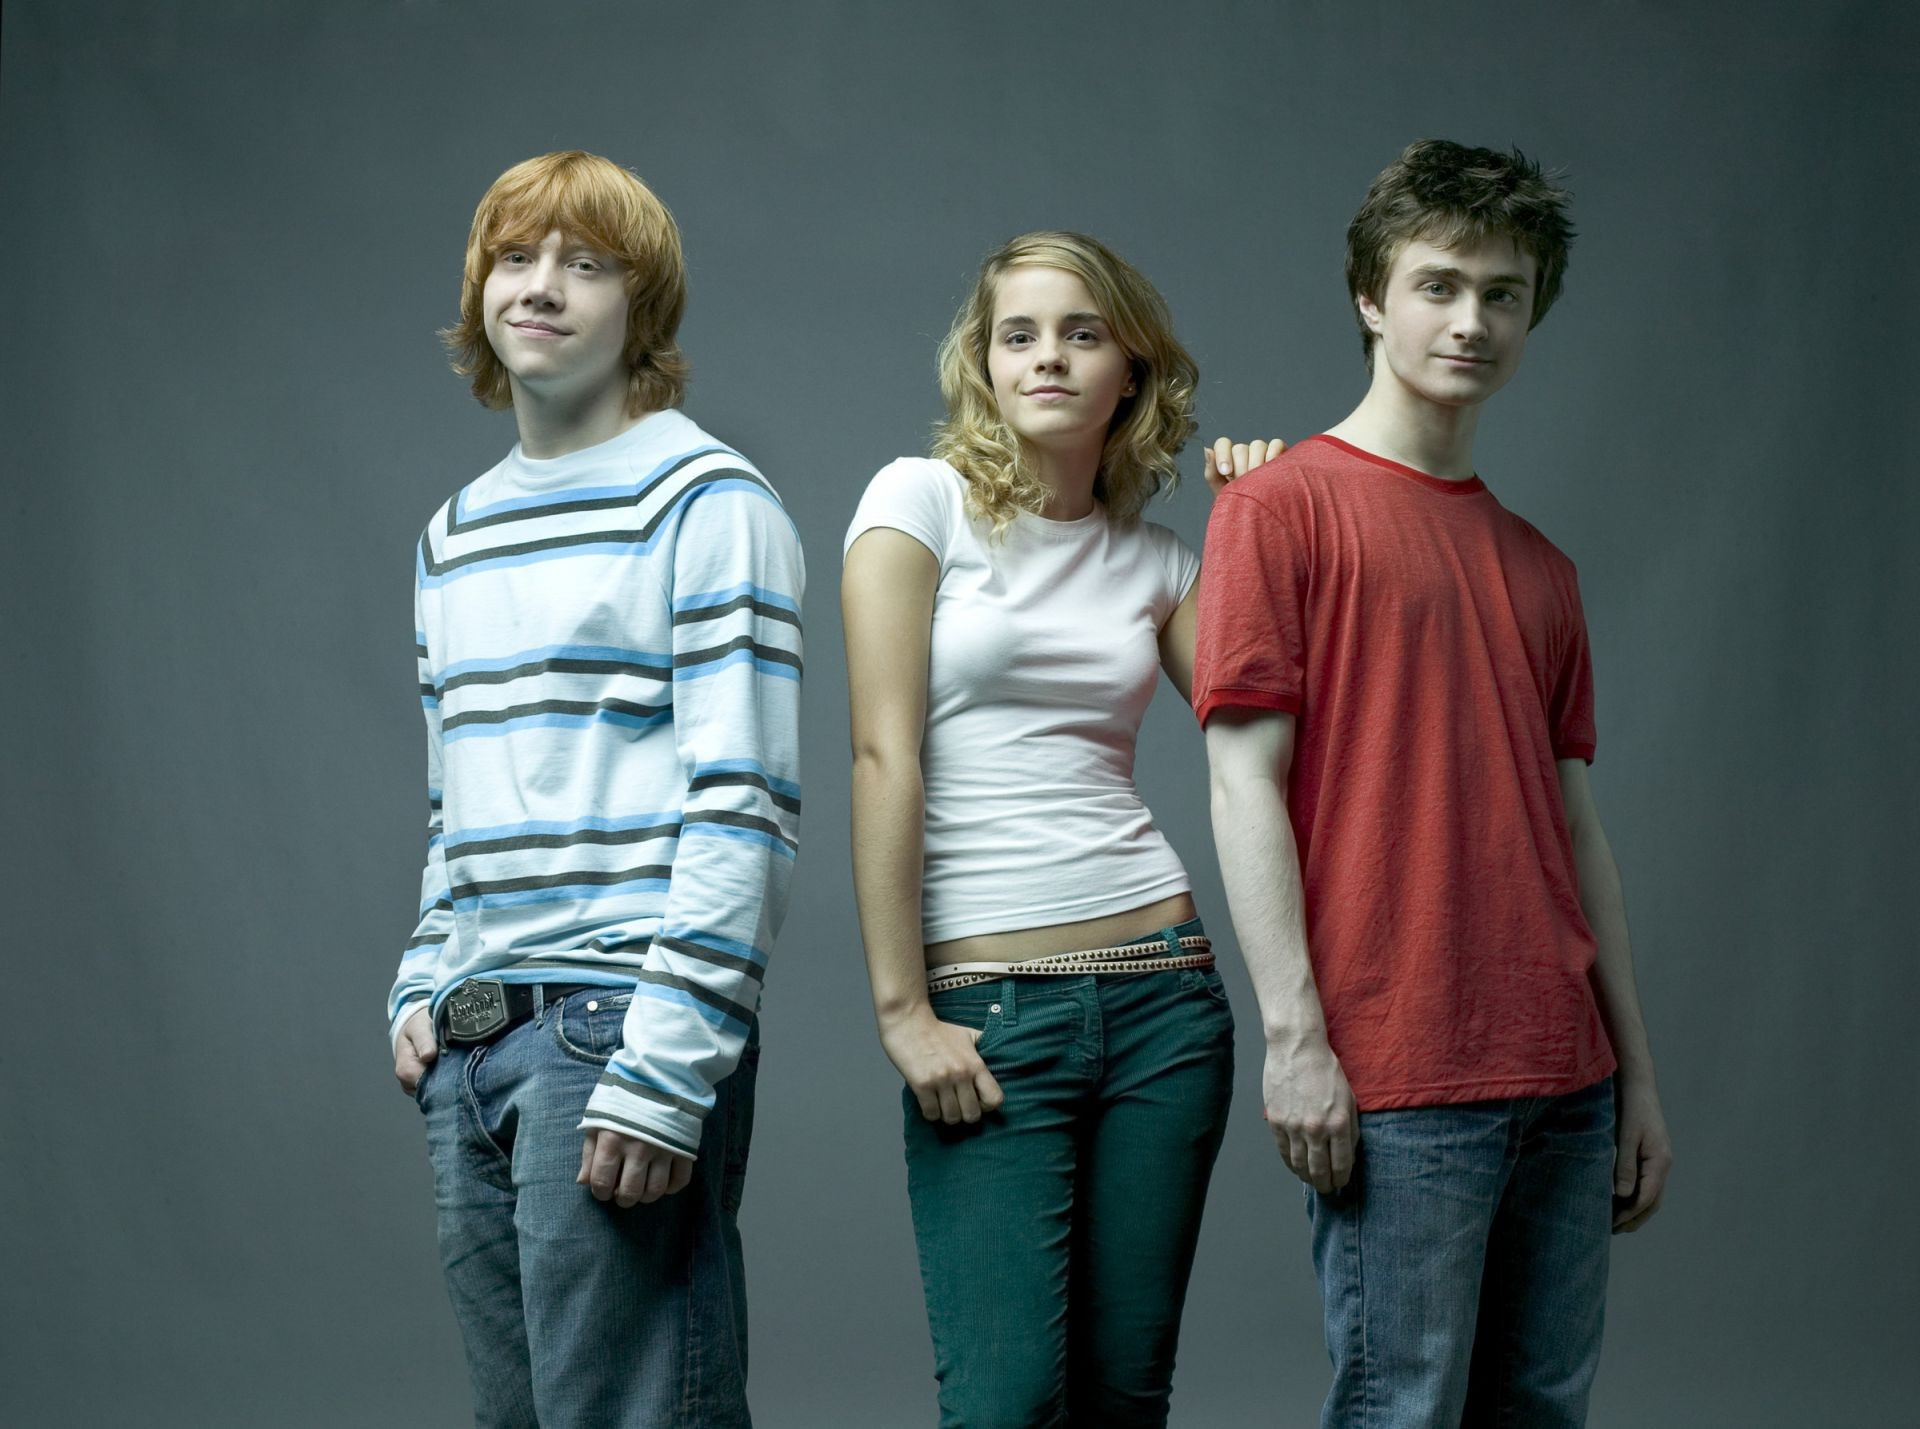 Harry Potter Hermione Ron 3 Phone Wallpapers